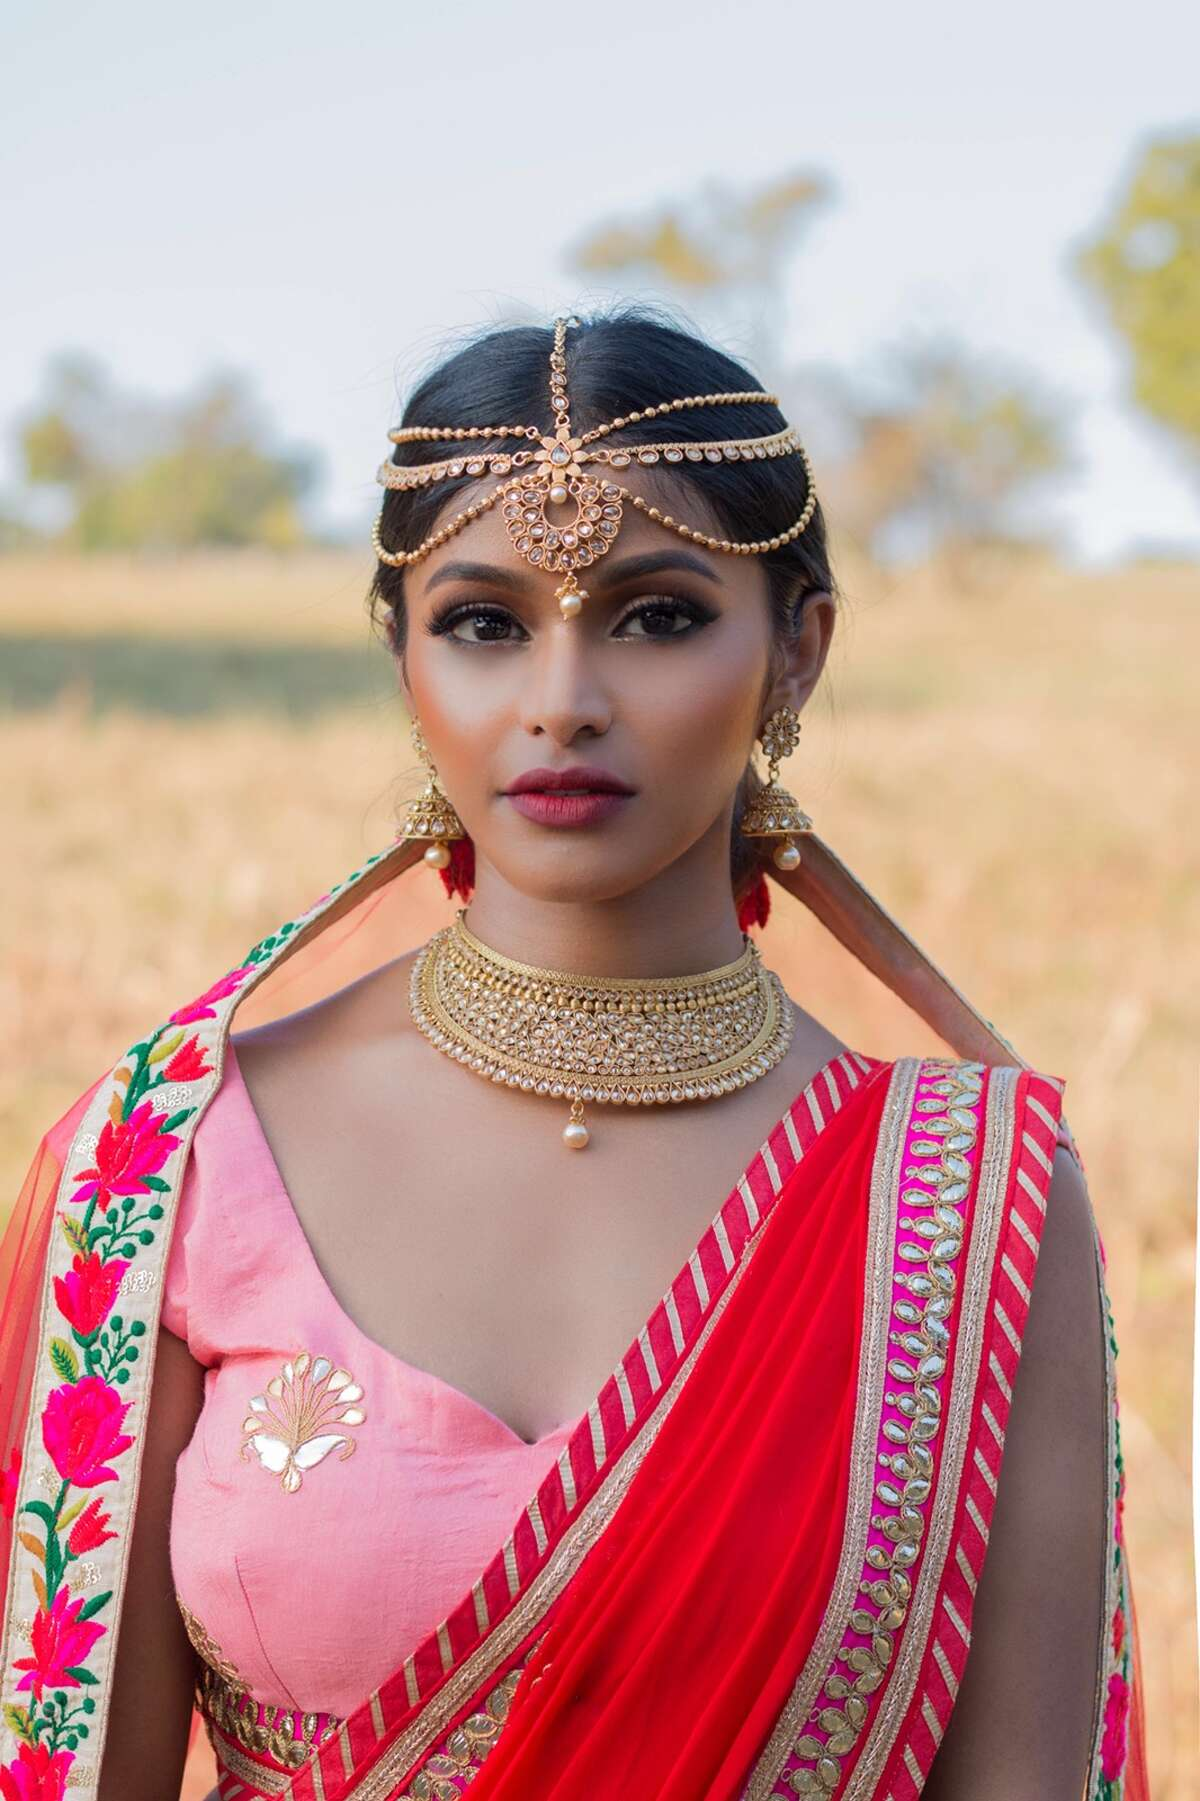 Dallas resident and model Sruthi Jayadevan flawlessly shuts down social media trolls demanding she tones down her Indian style. Her response? More photos appreciating her culture.